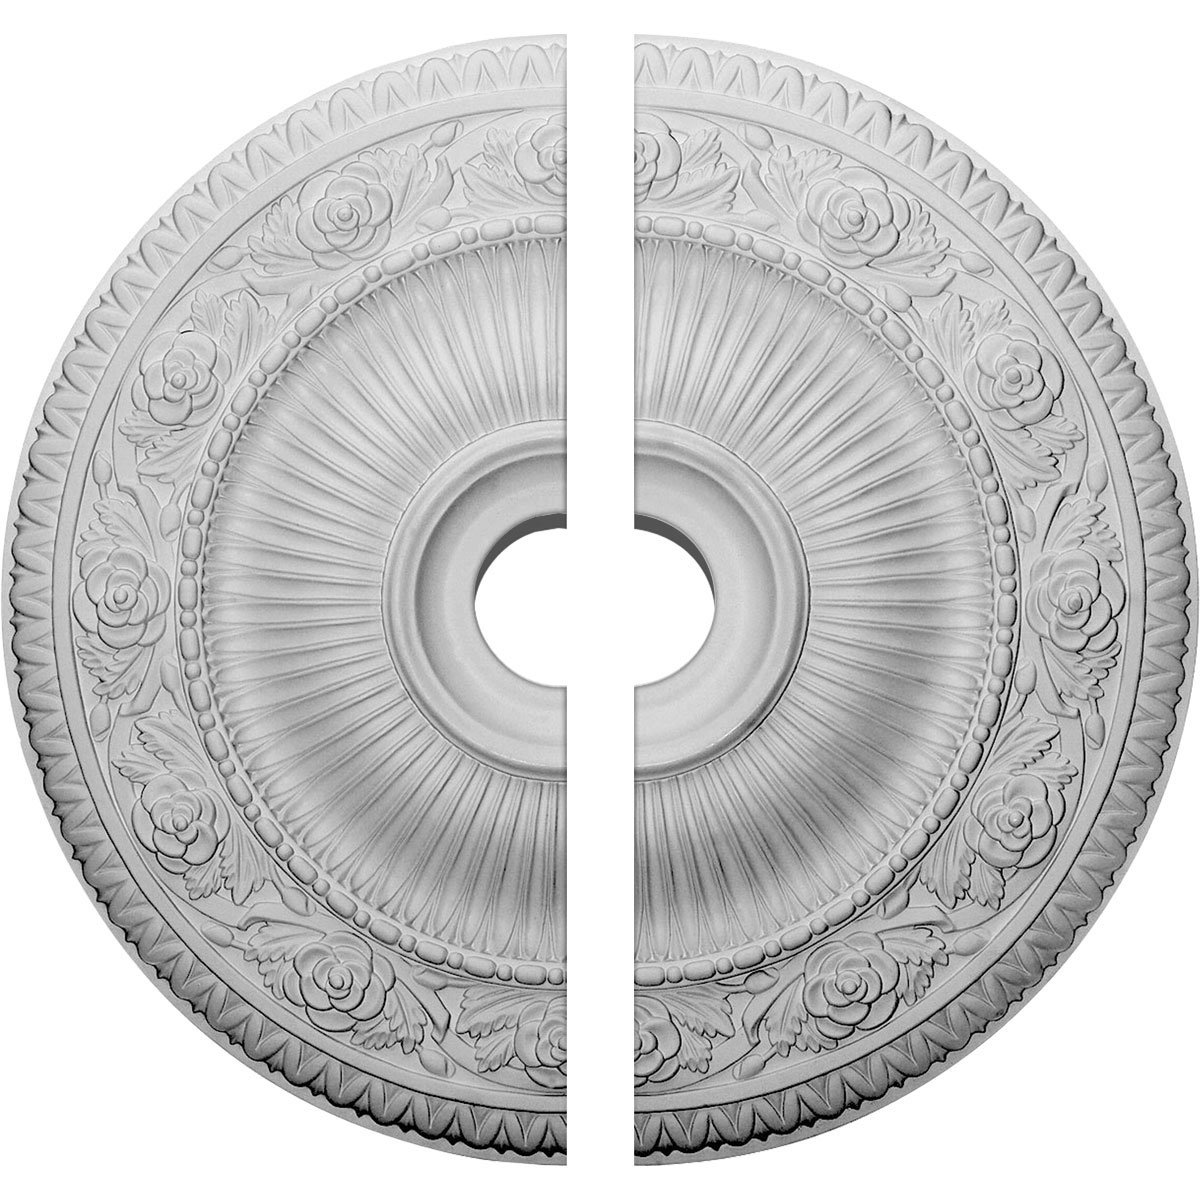 Ekena Millwork CM24LO12 24 1/4''OD x 3 7/8''ID x 2''P Logan Ceiling Medallion, Two Piece (Fits Canopies up to 6 1/8''), Factory Primed White